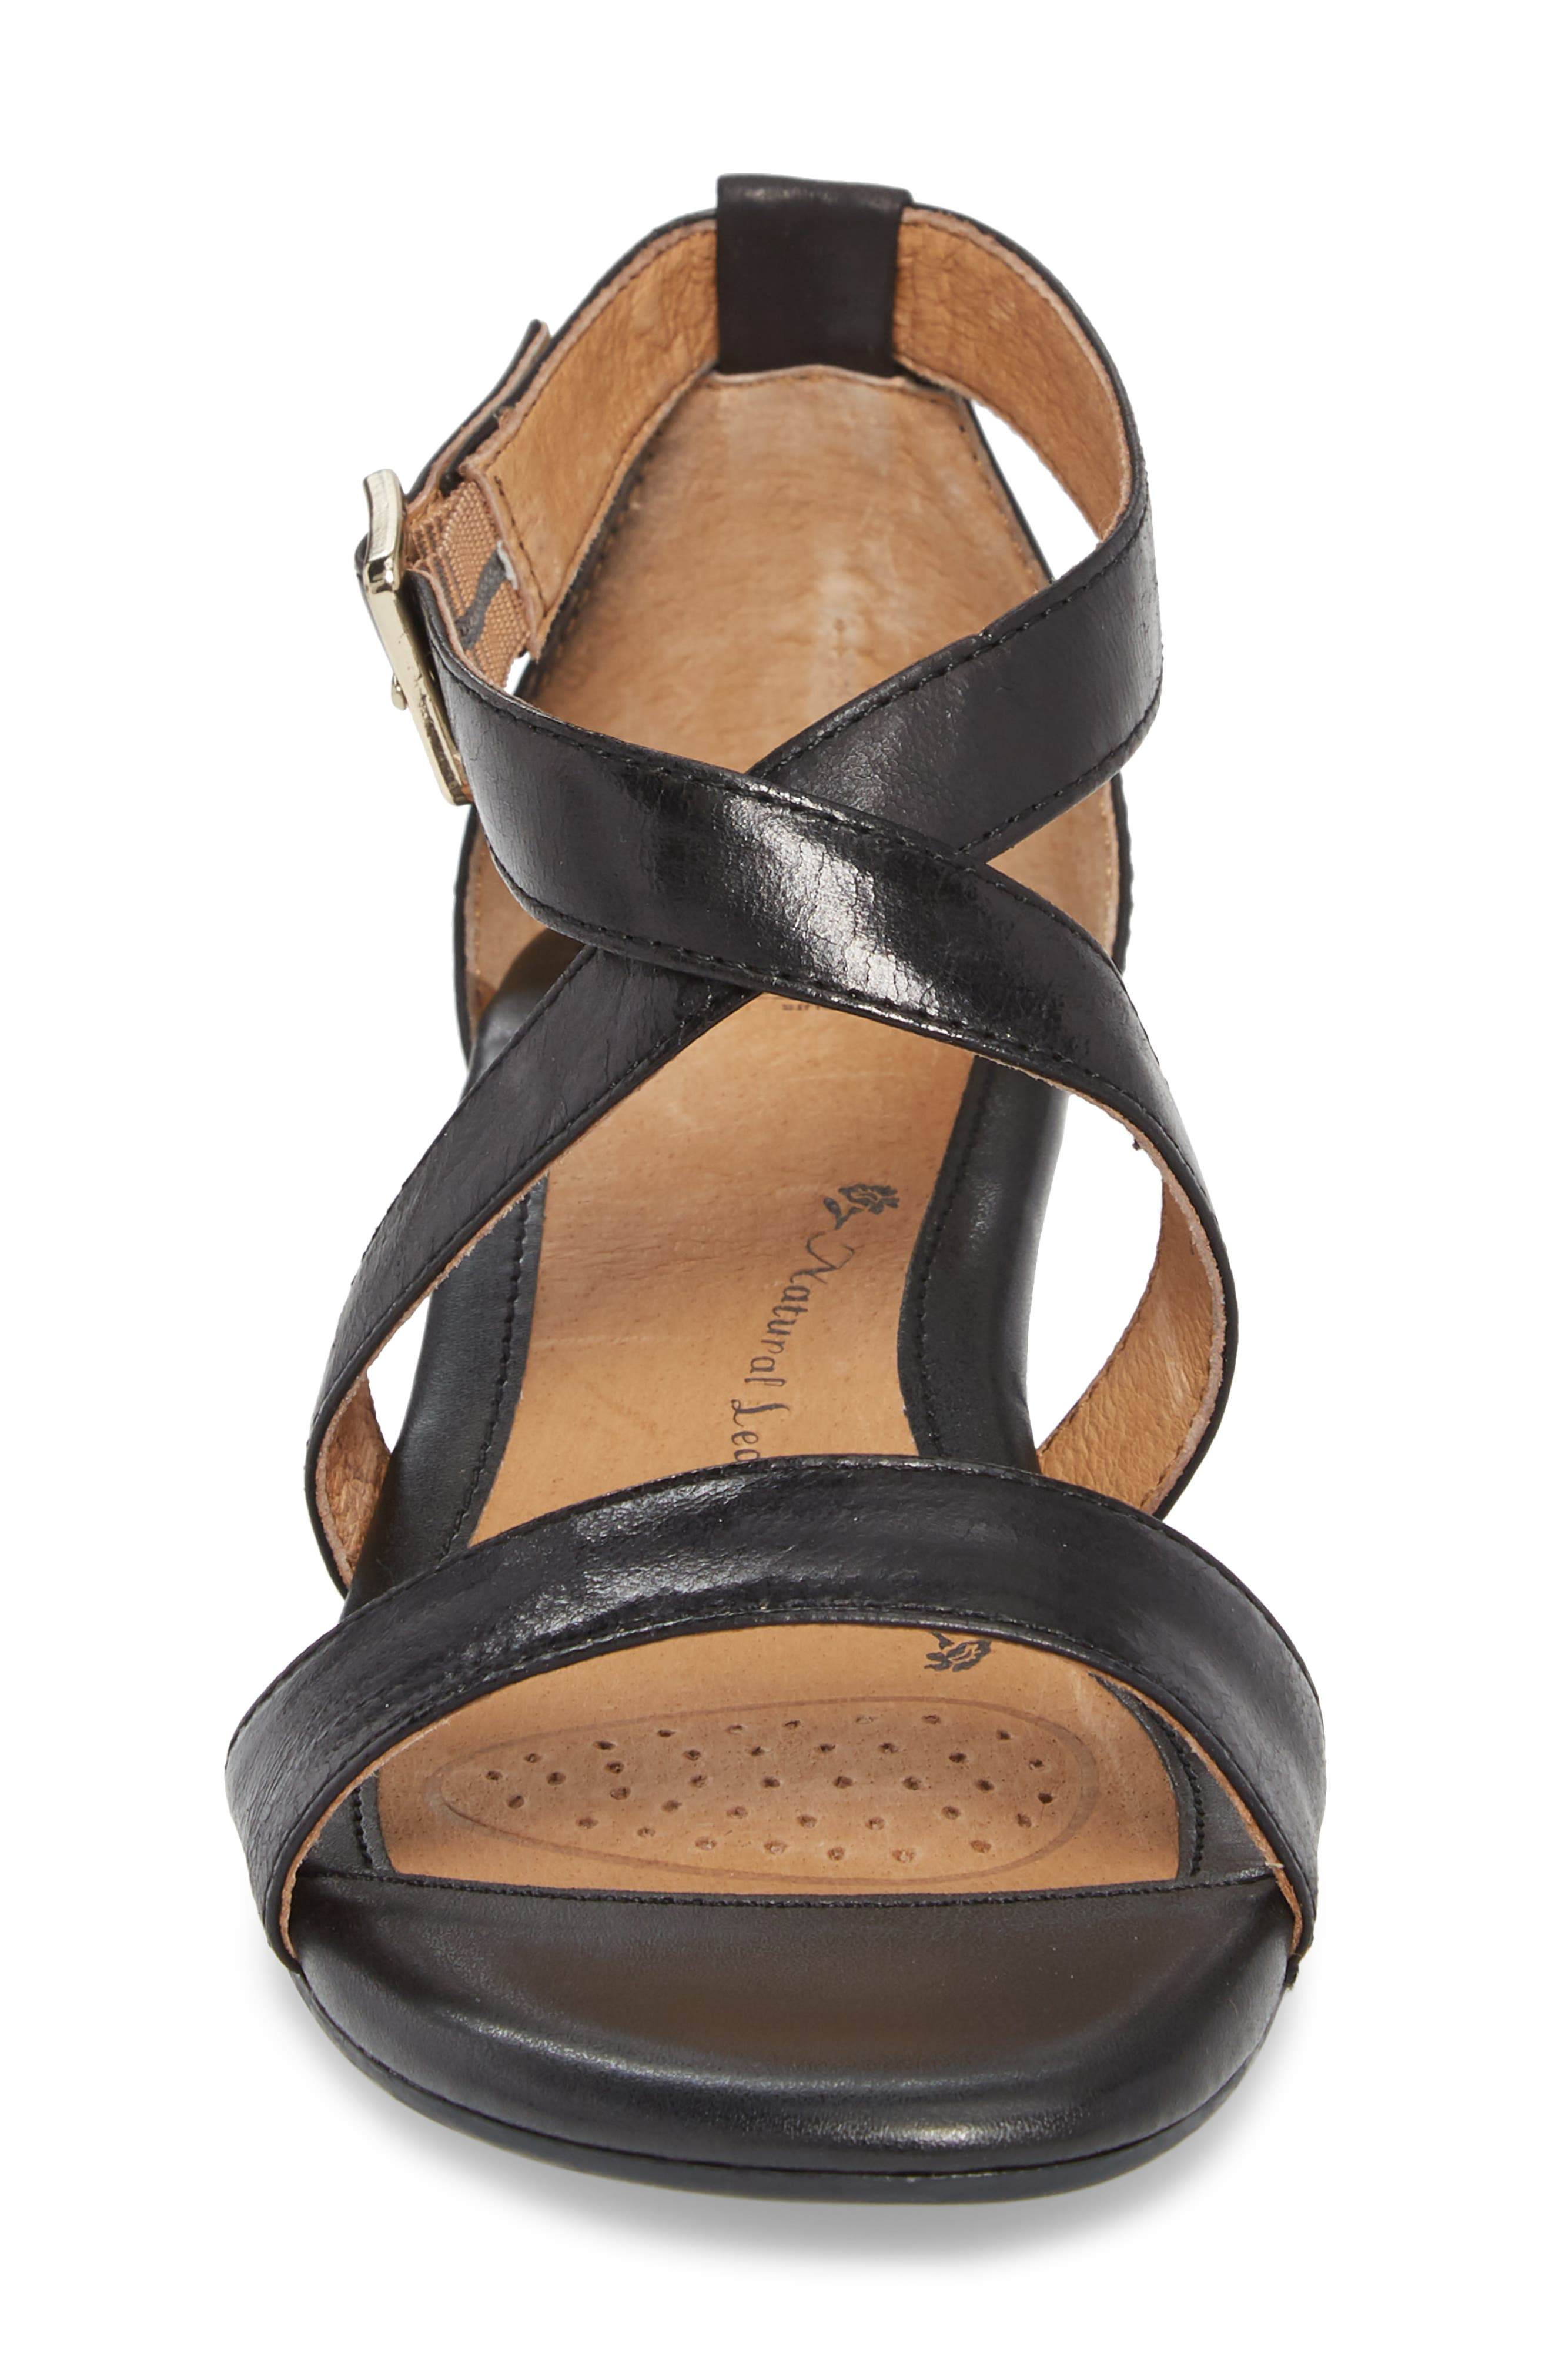 'Innis' Low Wedge Sandal,                             Alternate thumbnail 38, color,